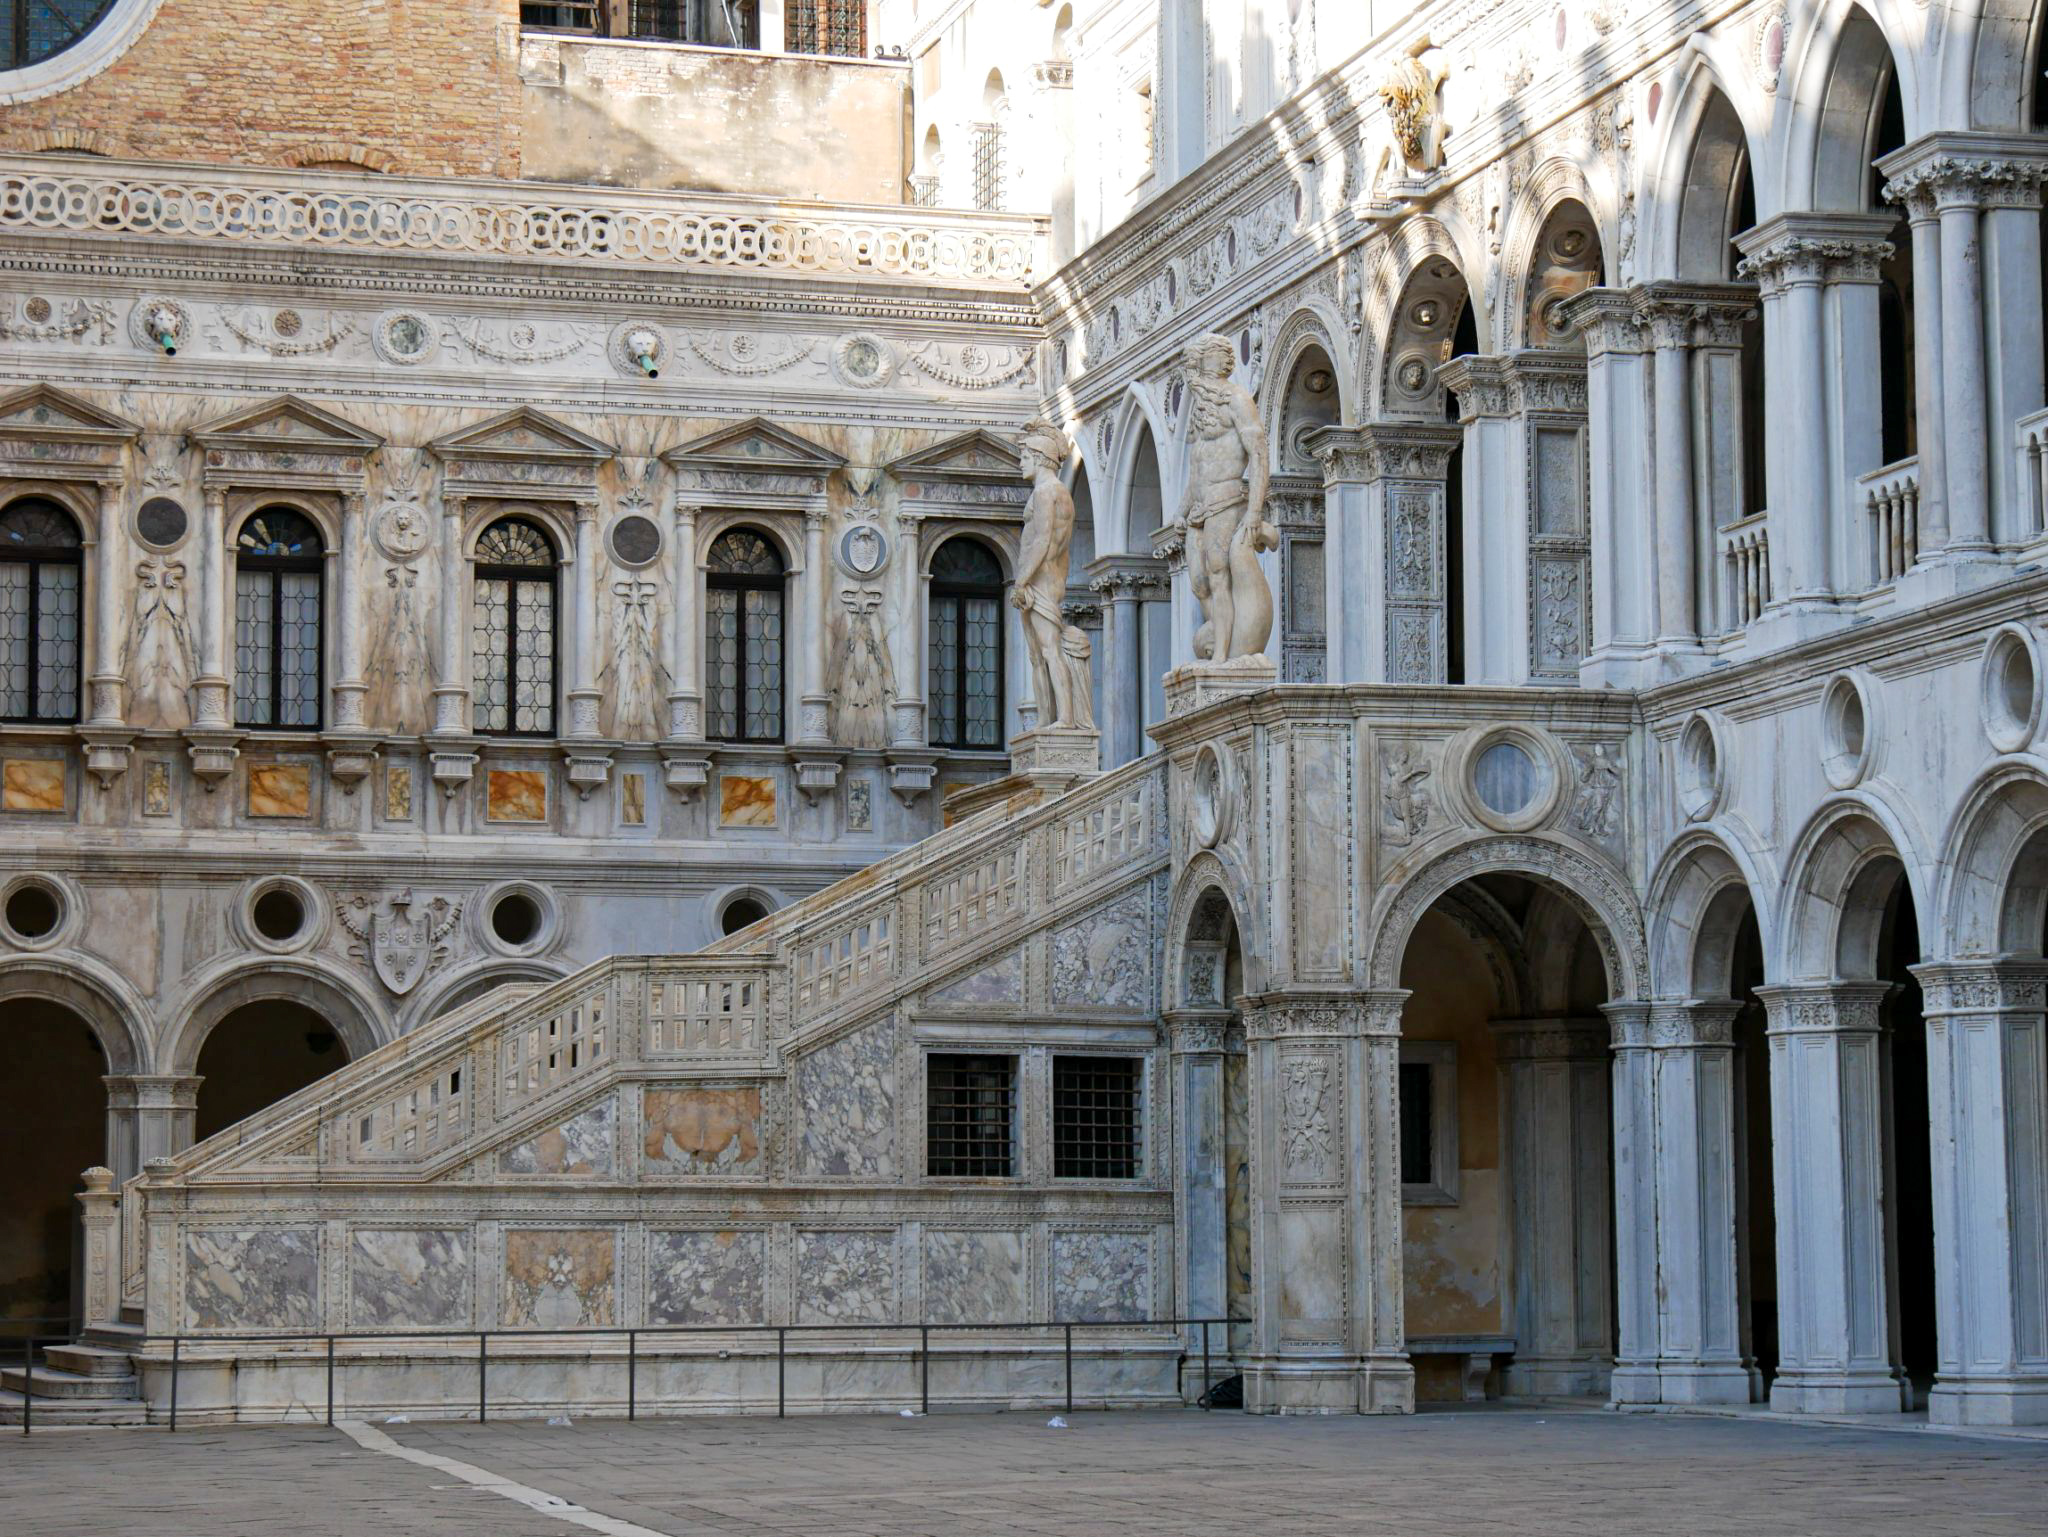 Giants' Staircase in the Doge's Palace in Venice